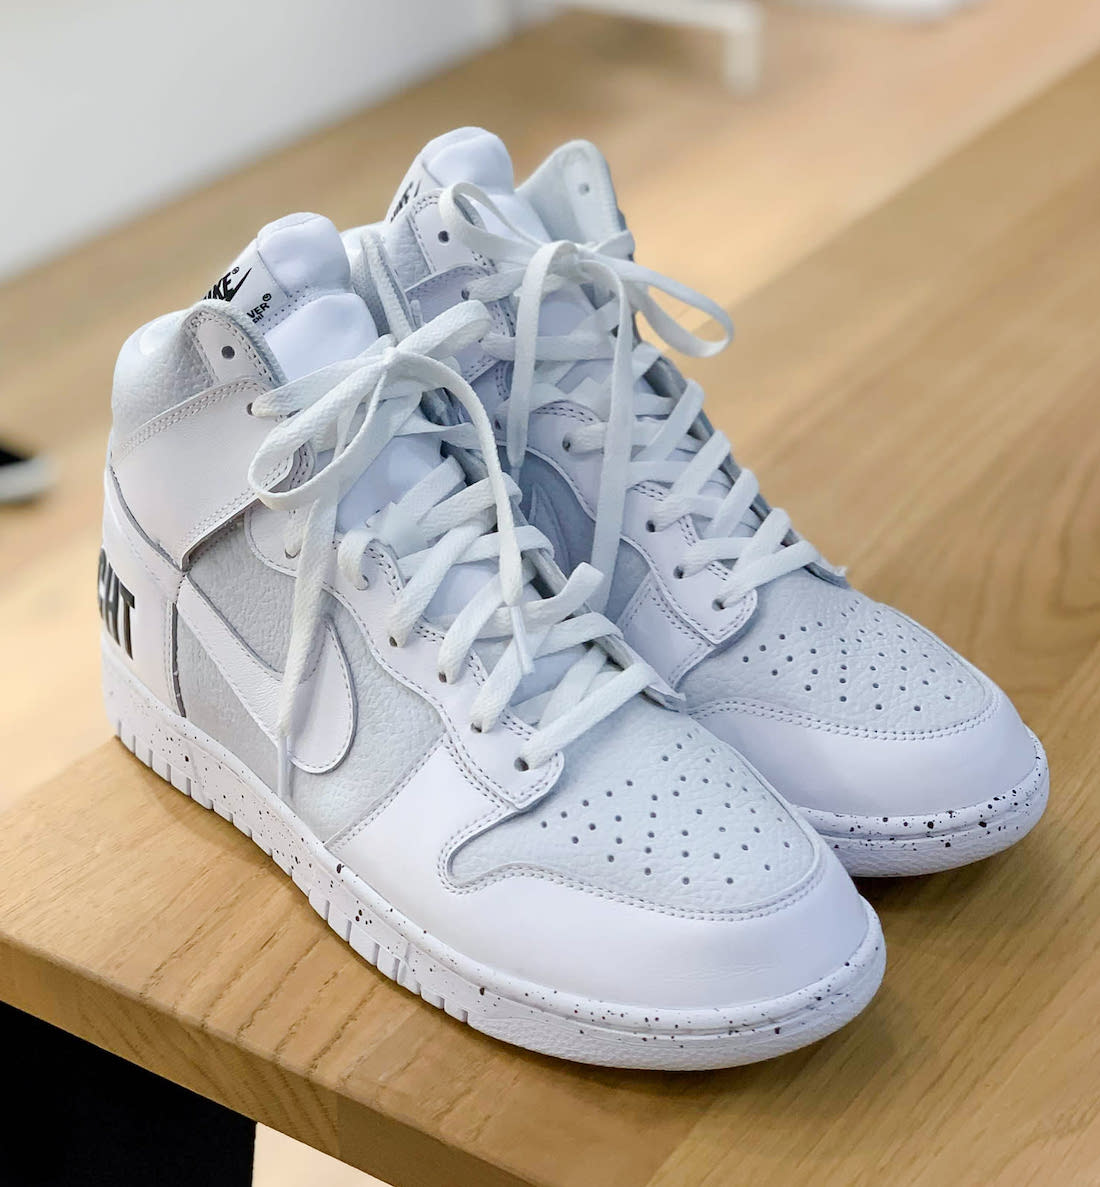 Undercover Nike Dunk High Chaos White Release Date